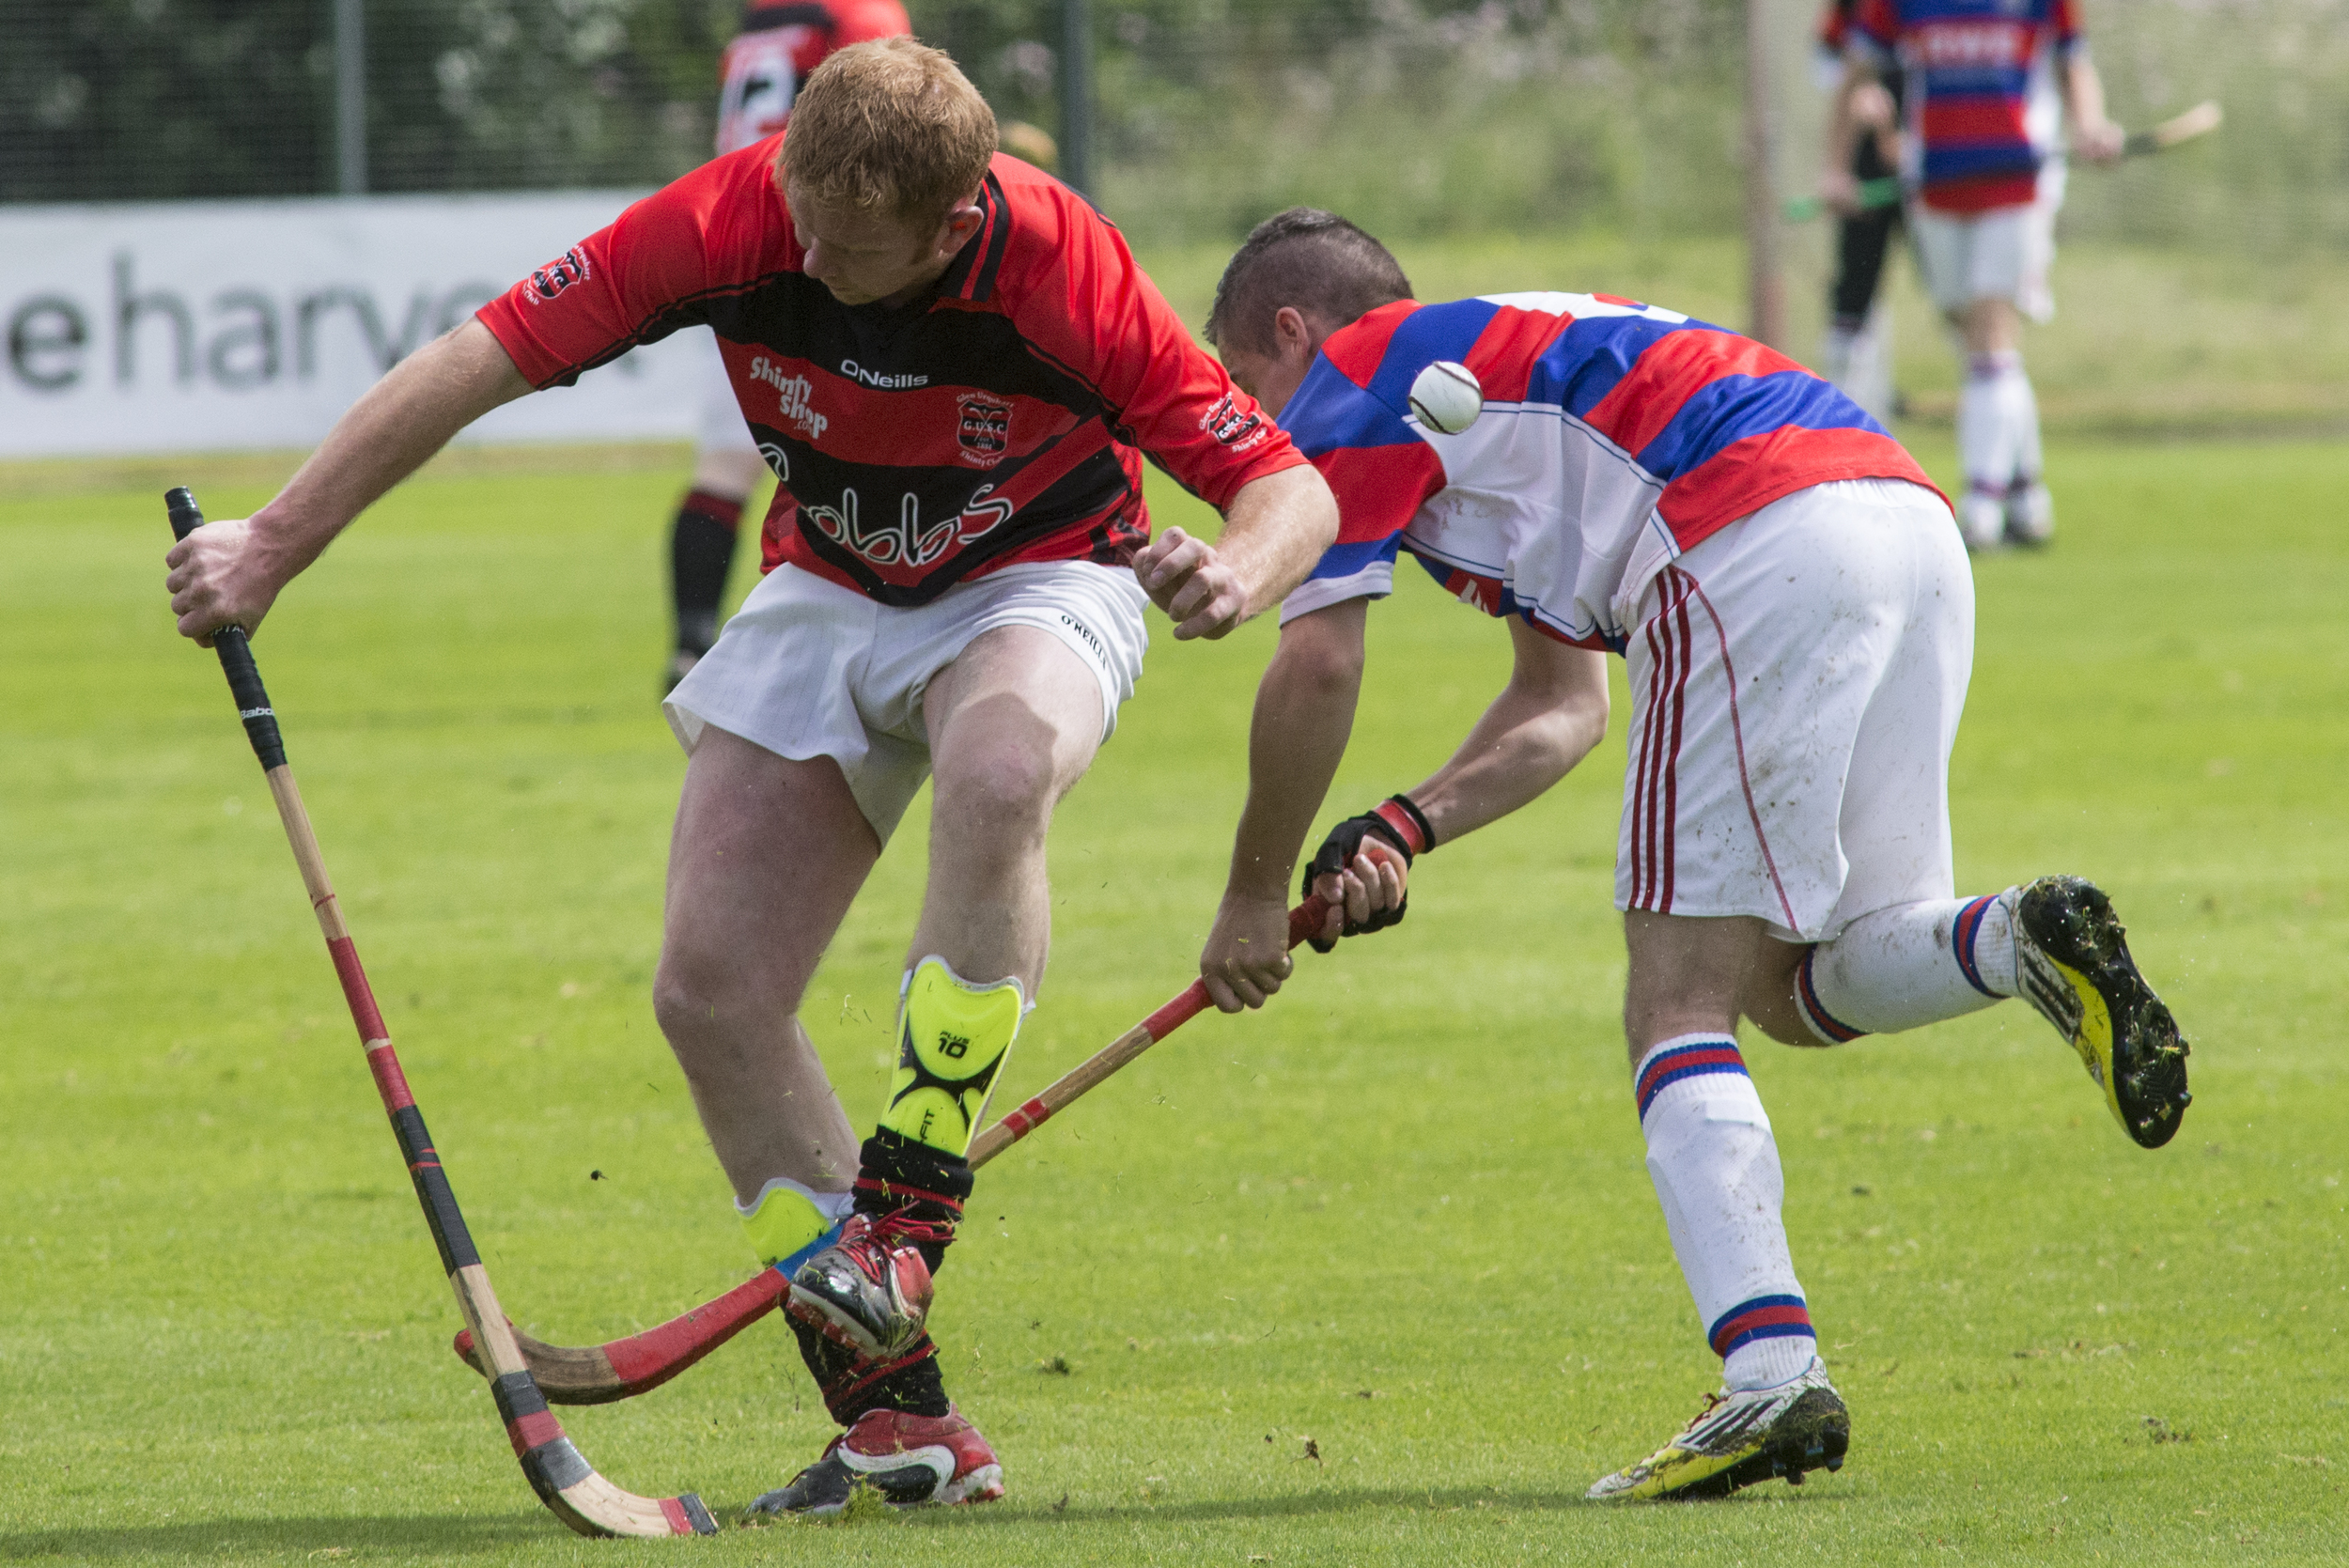 Kingussie shinty player Jake MacPherson (right) fights for control of the ball using his caman against his Glenurquhart opponent at The Dell in Kingussie, Scotland on Saturday, August 1, 2015. Shinty is unique to Scotland and one of the oldest games in the world. The Dell playing fields at Kinguisse are considered by some to be the original home of organised shinty as we know it today.